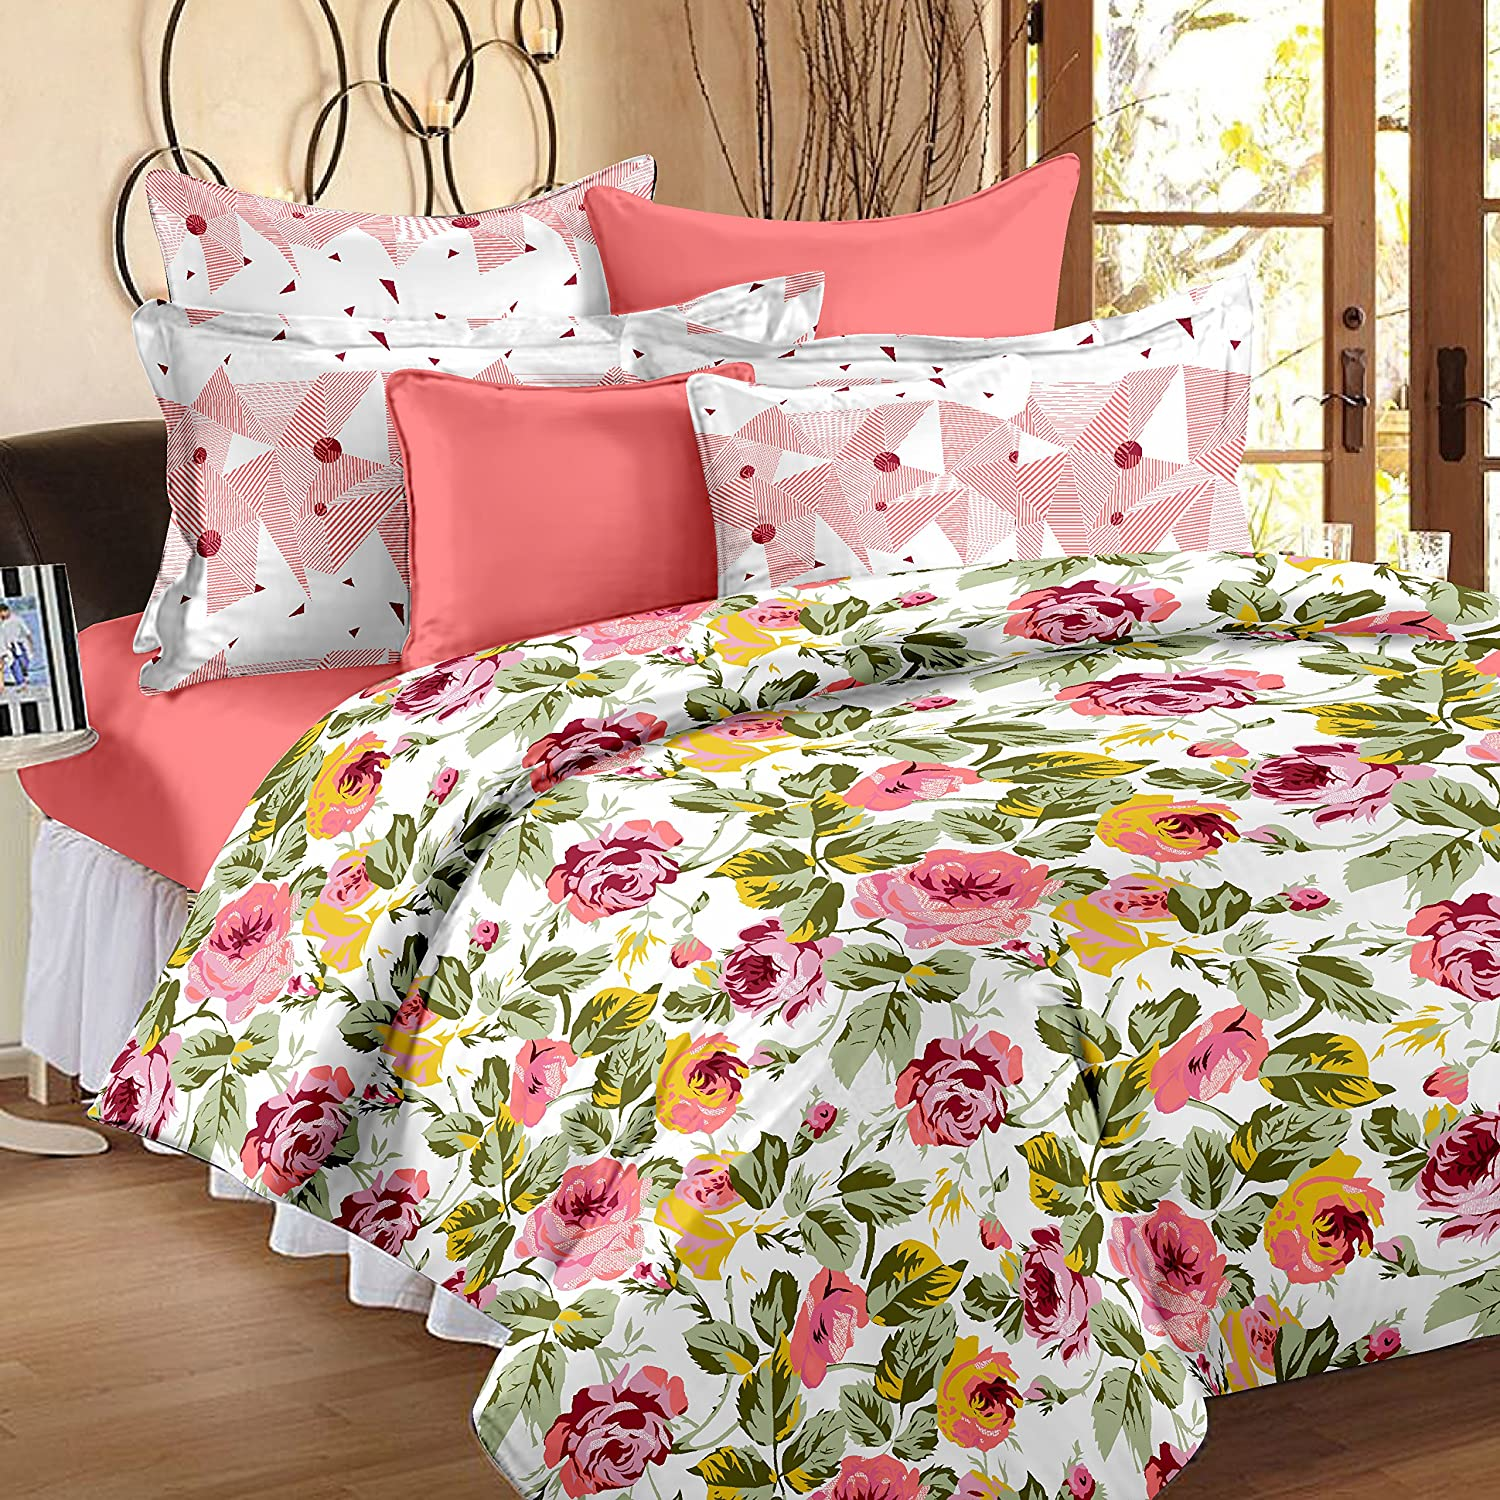 Story@Home Premium Soft and Light Weight Luxury Printed Reversible Floral Cotton Satin Double Comforter